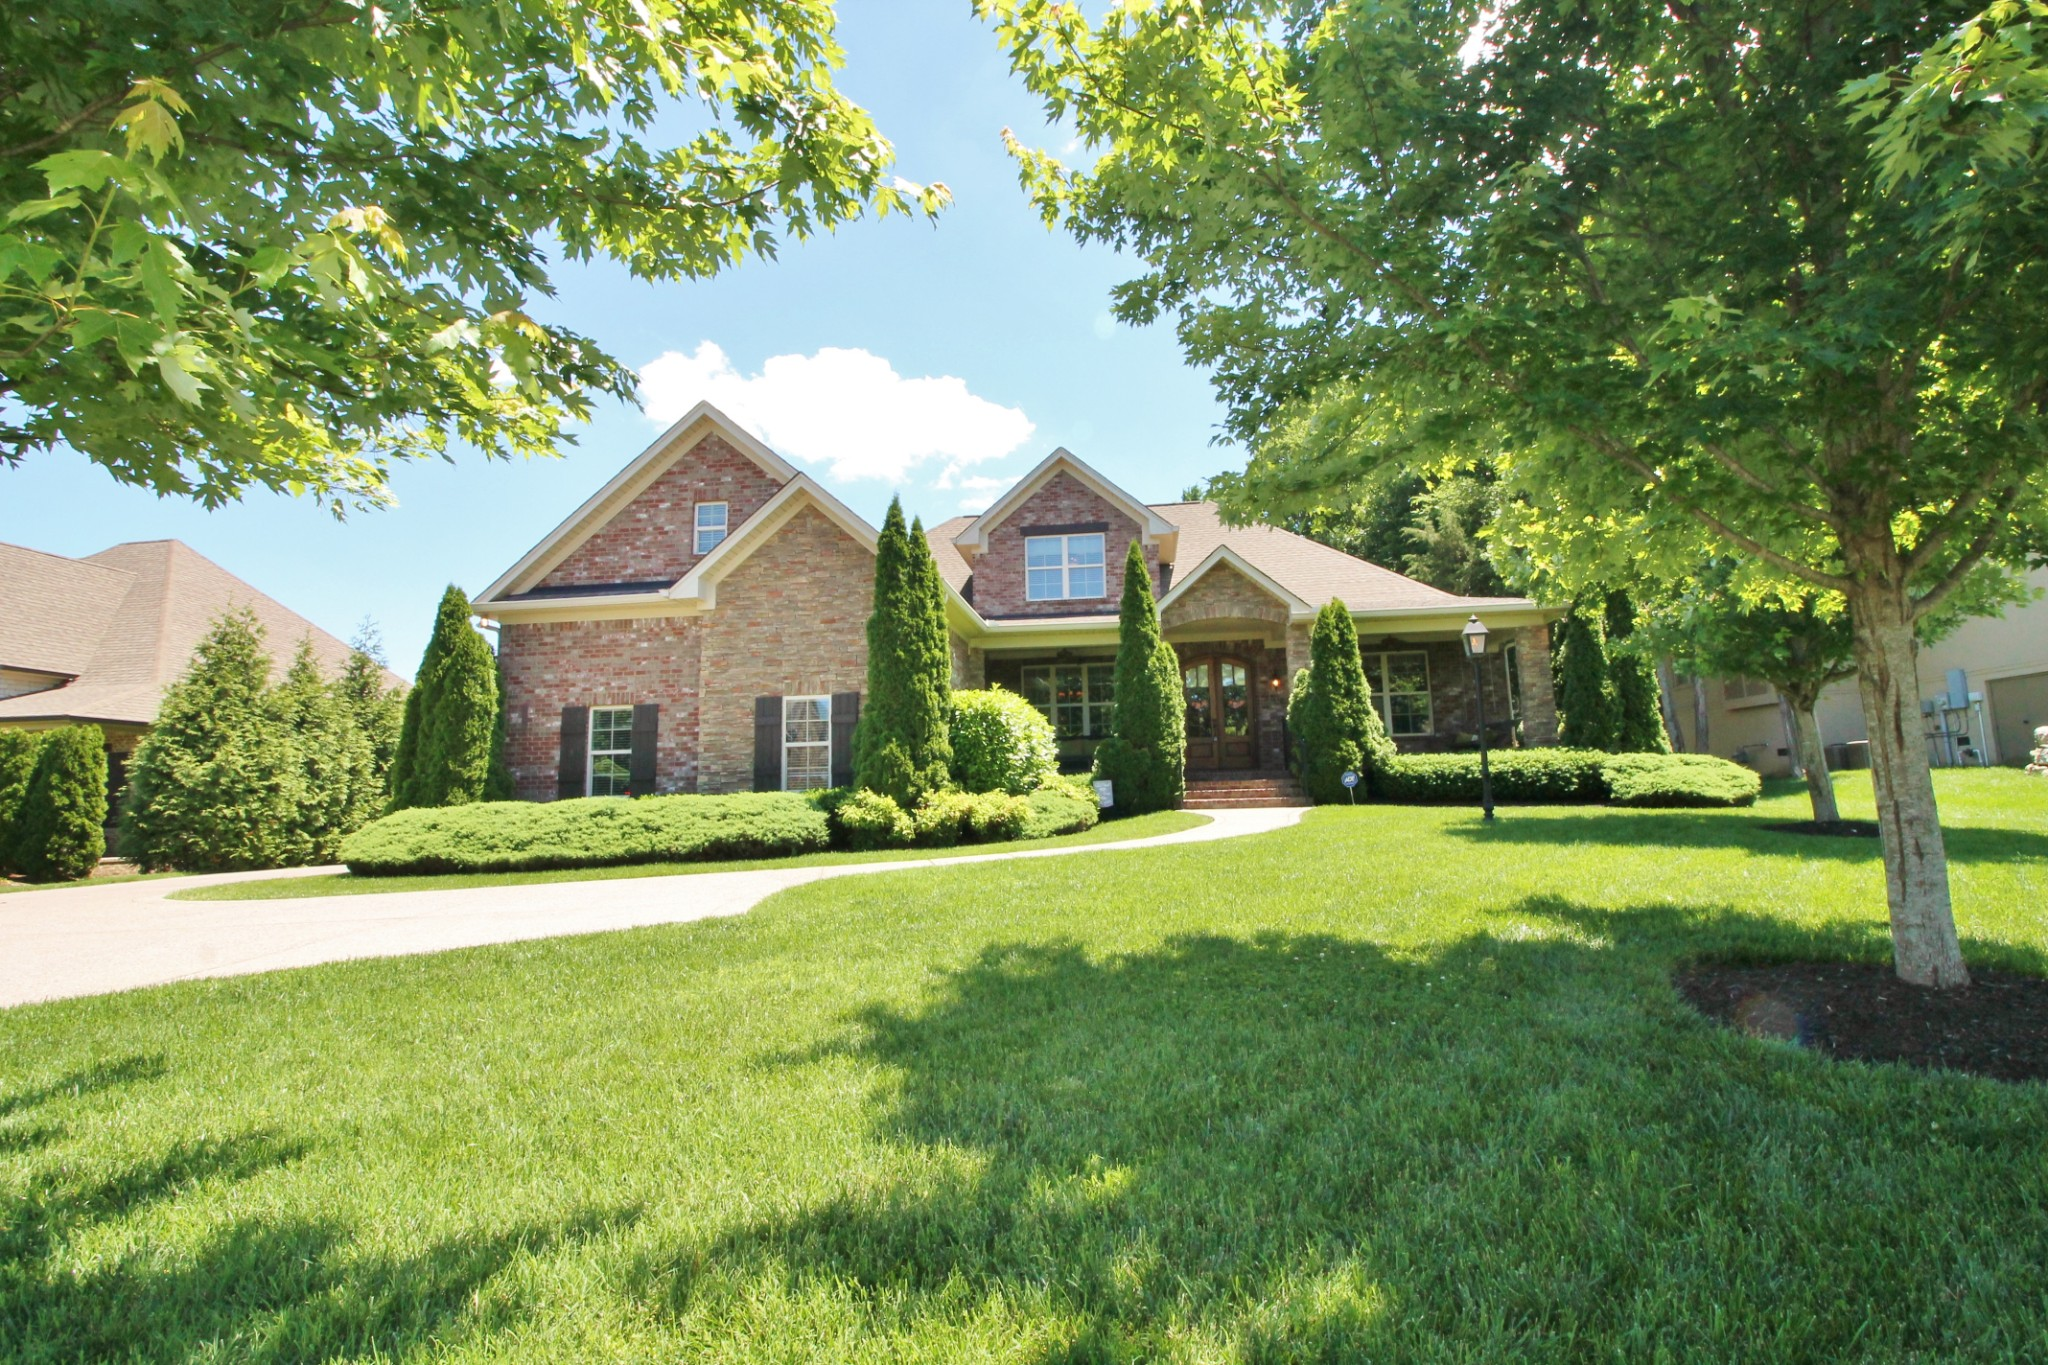 Sunset Park!  With a pool!  Private fenced back yard with stunning patio, fireplace and grill area! Screen in Porch! Huge double sided front porch for these long evenings! Hardwoods, tile, high end appliances, granite counters everywhere! Coffered Ceilings in dining, gas fireplace and stove! Absolutely spotless home! So many features to mention! Downstairs master suite! See it soon!